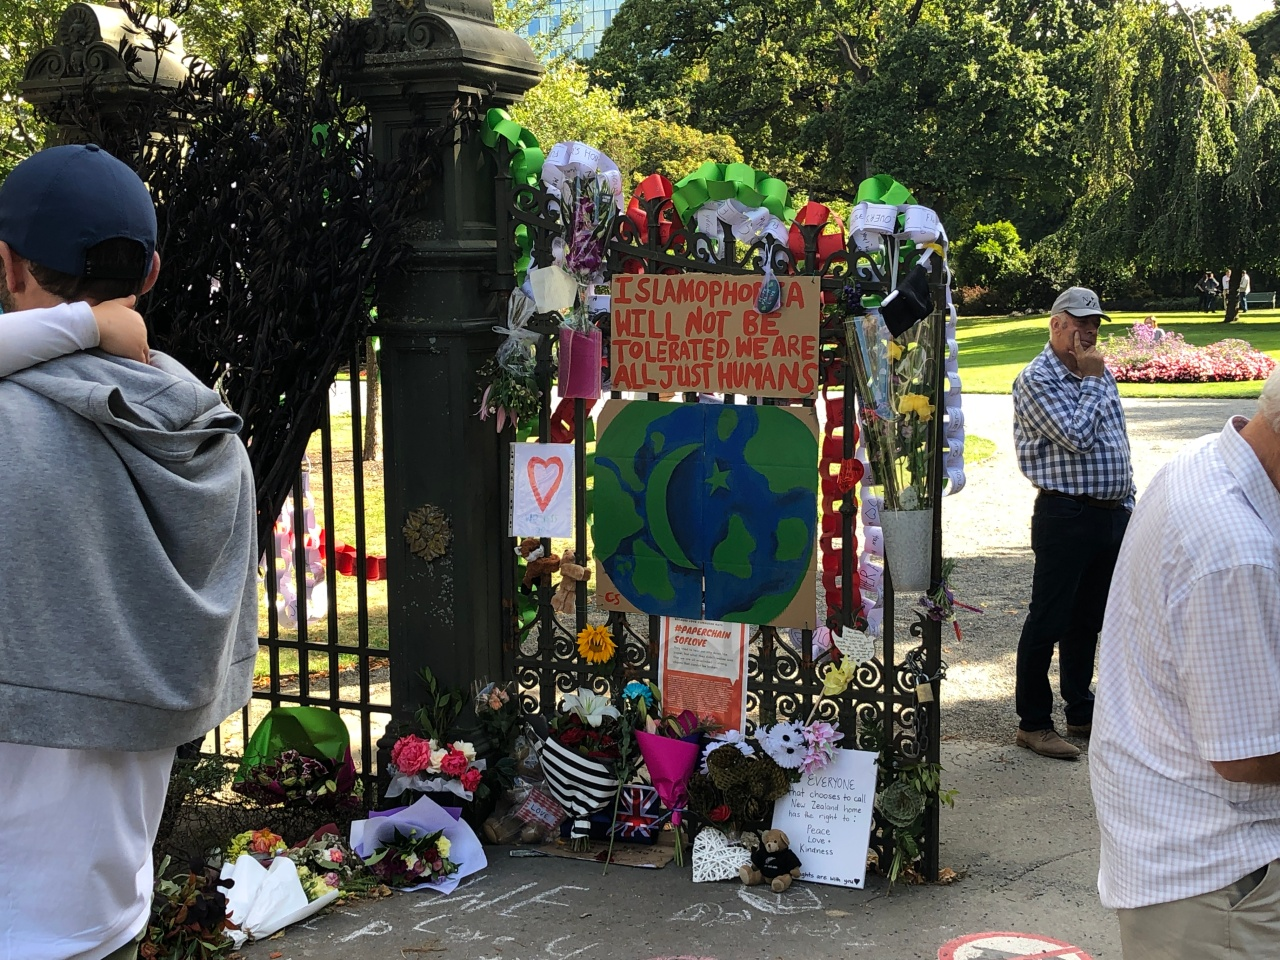 """Signs and decorations adorn the gates to the Christchurch Botanical Gardens. One reads, """"Islamophobia will not be tolerated. We are all just humans."""" These are signs and tributes to the victims of the Christchurch terrorists attacks."""